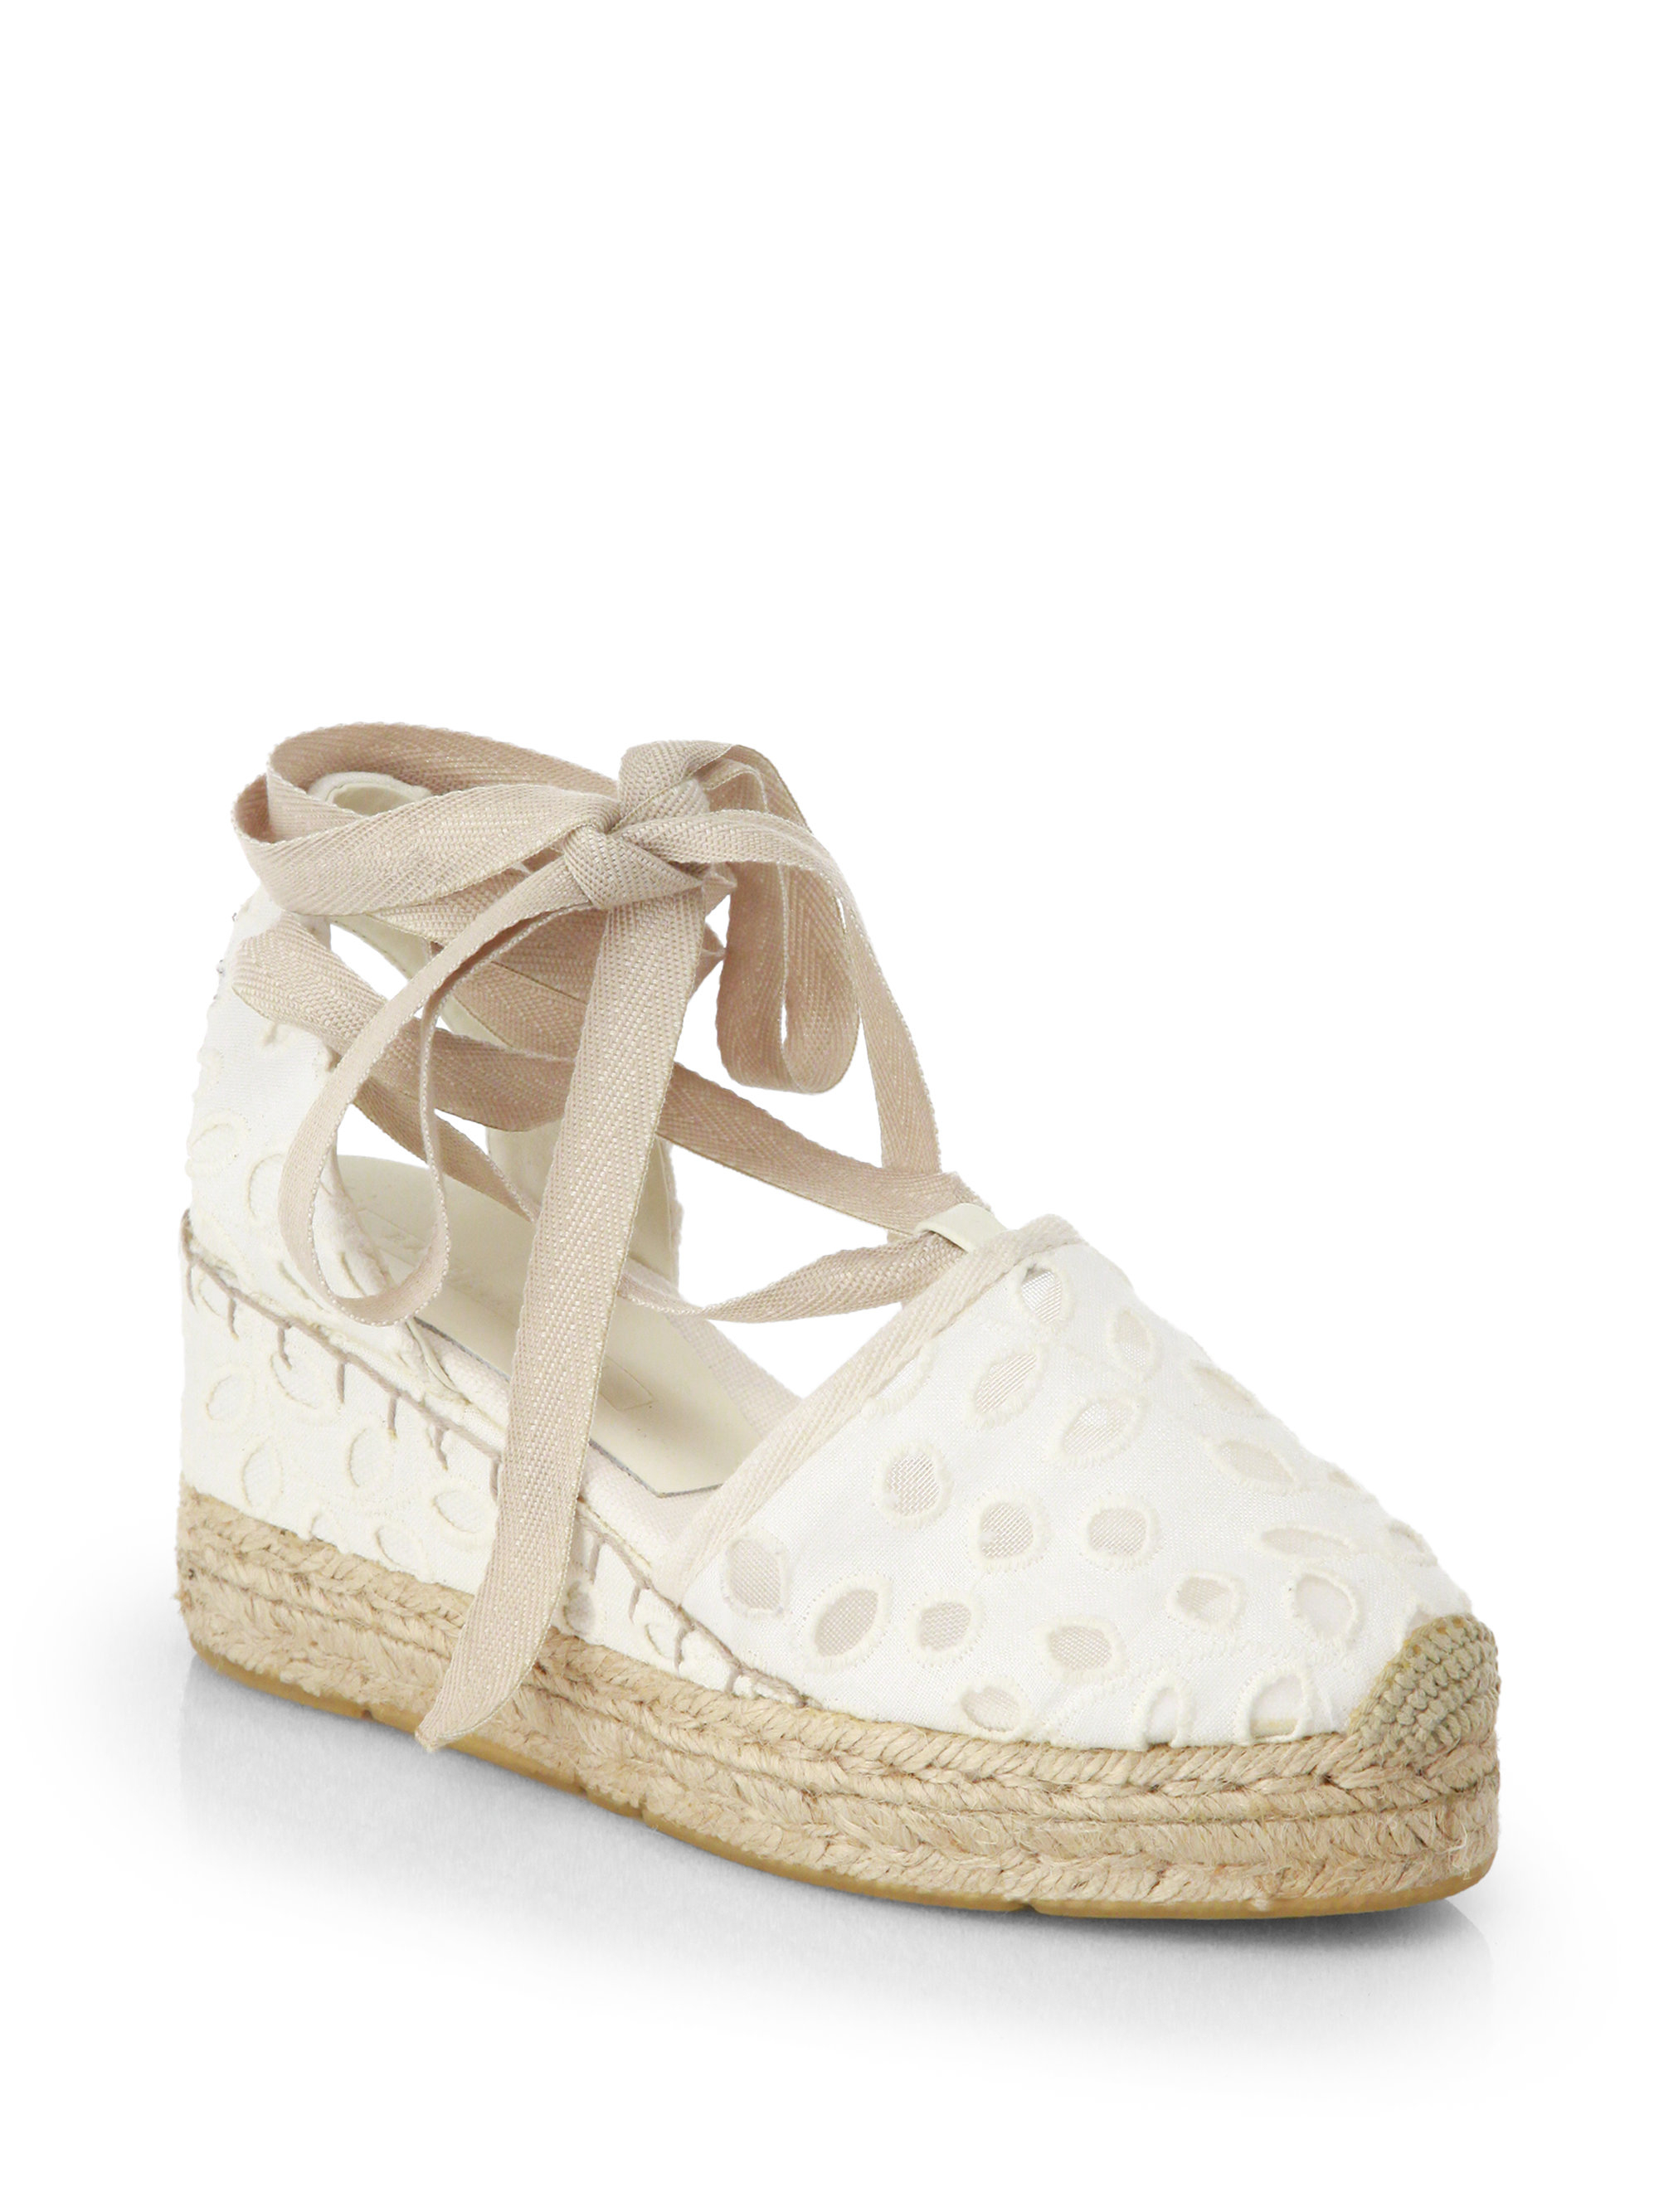 ralph lauren collection uma eyelet espadrille wedge sandals in beige cream lyst. Black Bedroom Furniture Sets. Home Design Ideas